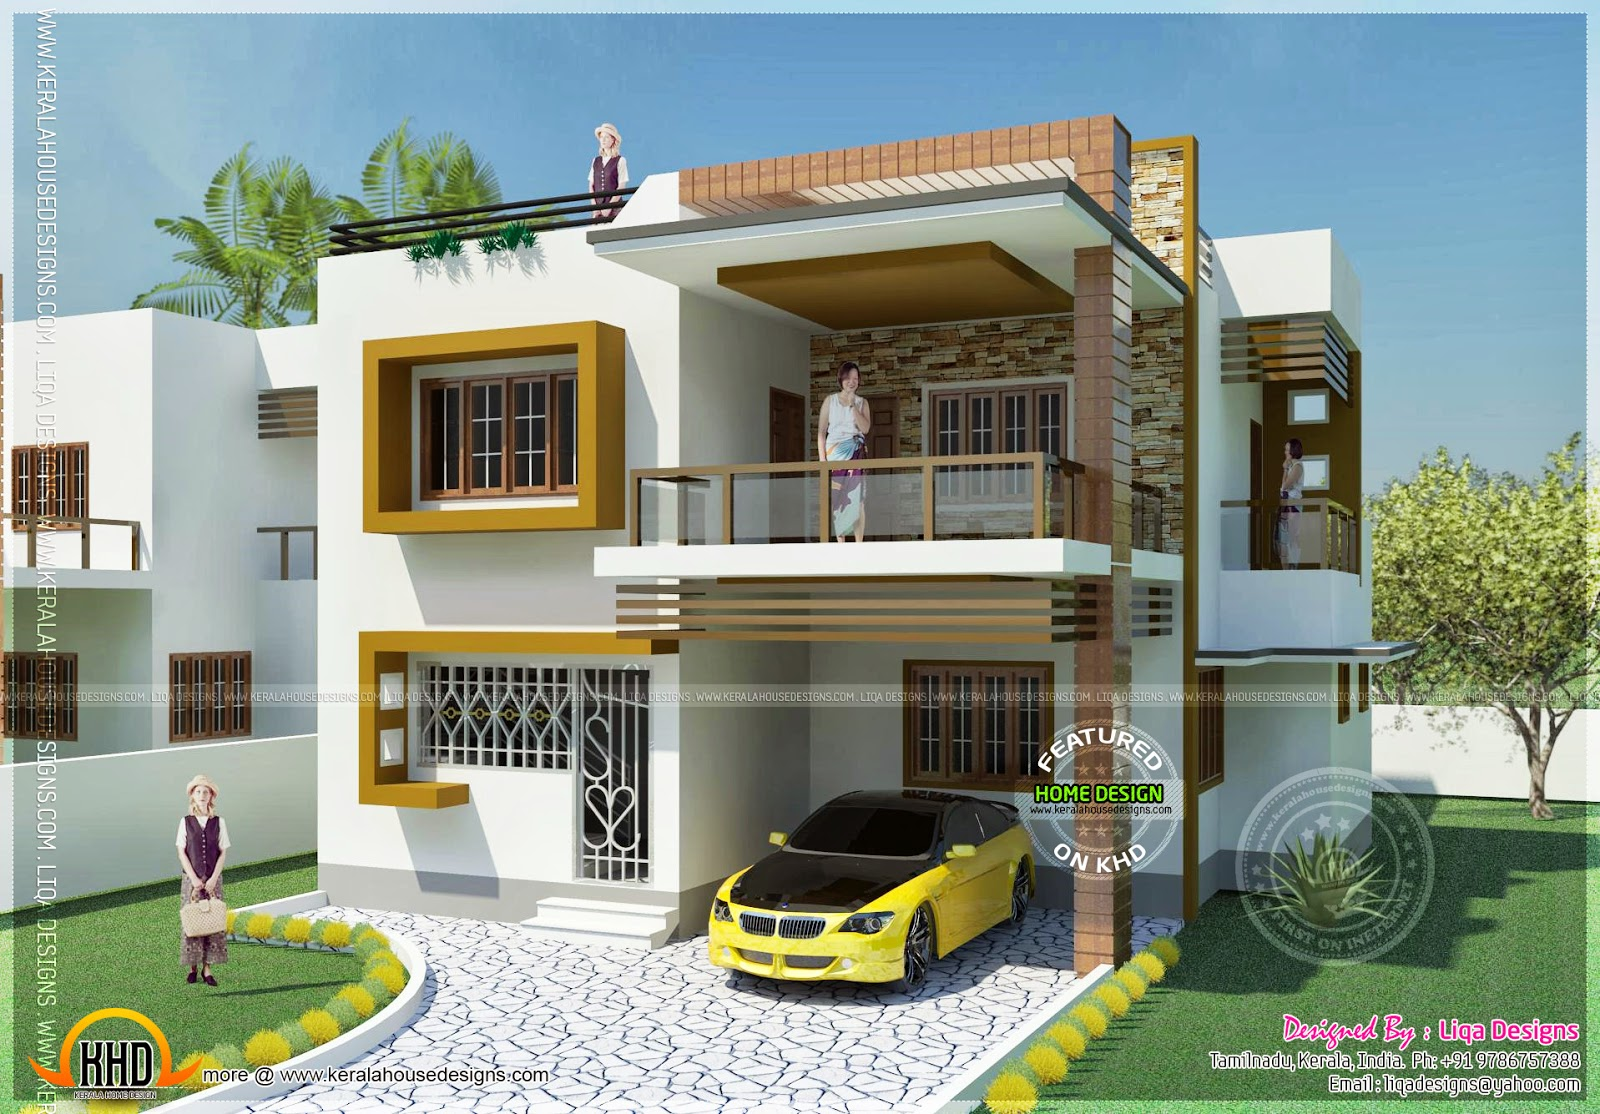 Double storied tamilnadu house design kerala home design for 2 bhk house designs in india